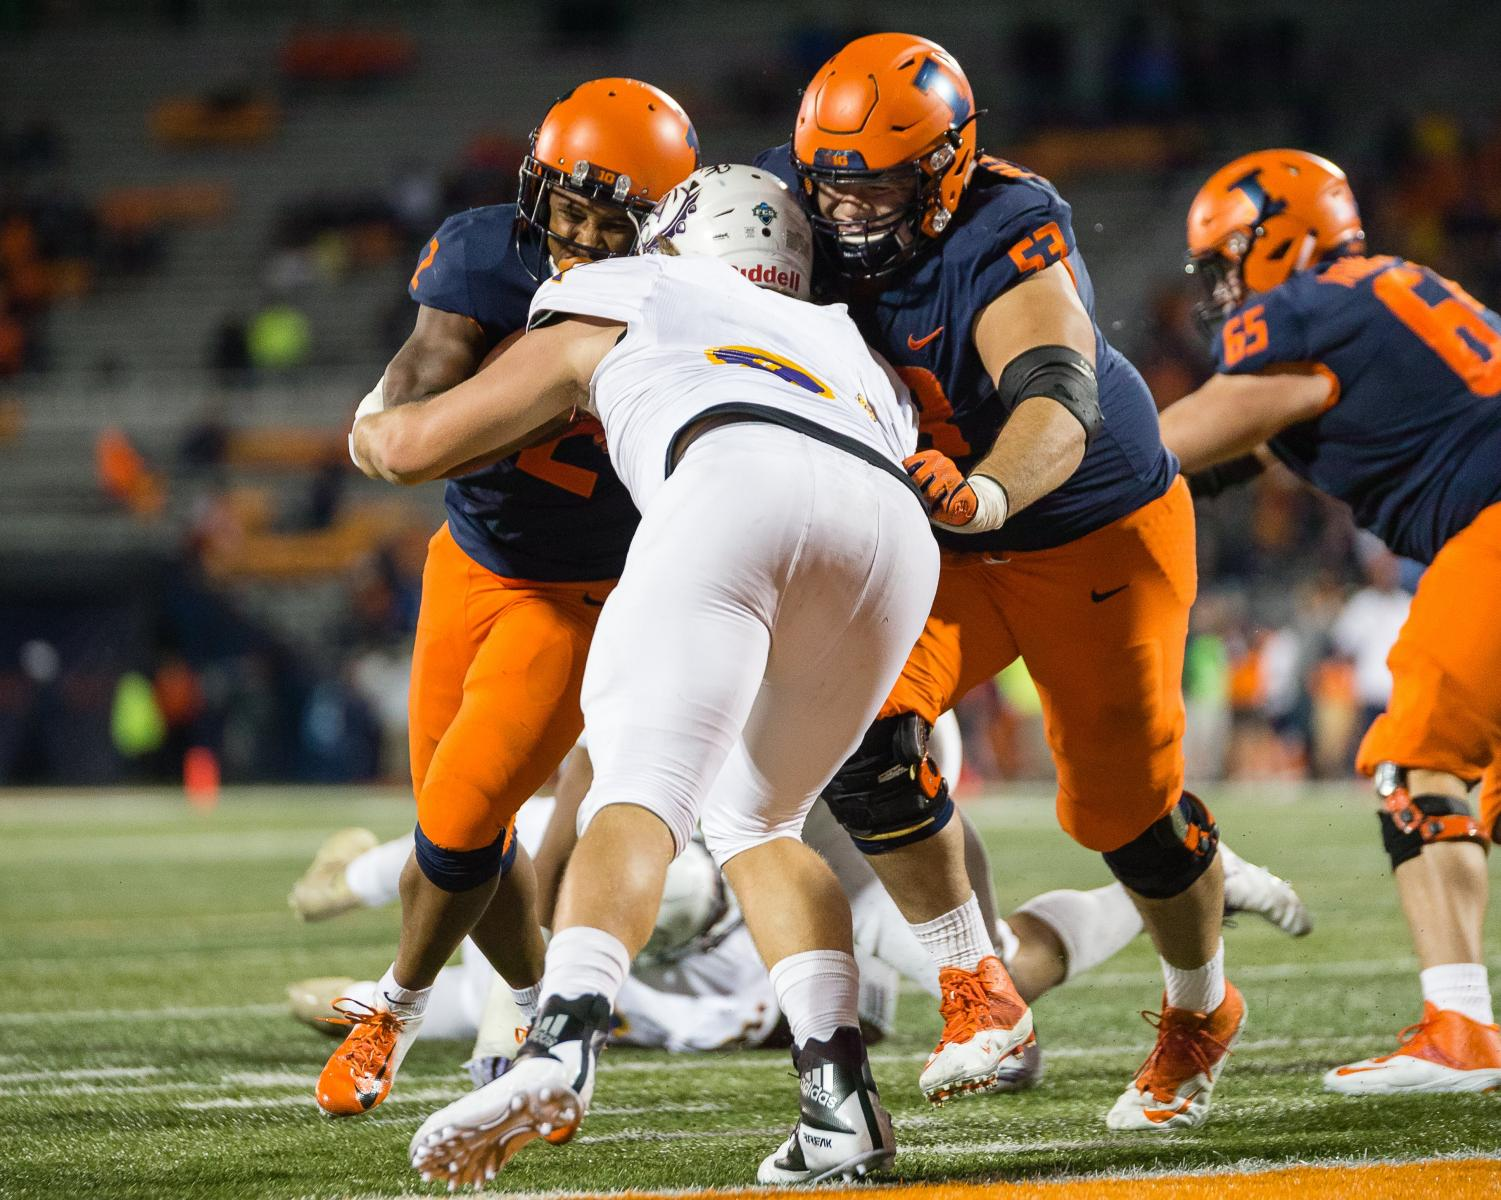 Illinois offensive lineman Nick Allegretti (53) blocks for running back Reggie Corbin (2) on his way to the end zone during the game against Western Illinois at Memorial Stadium on Sept. 8.